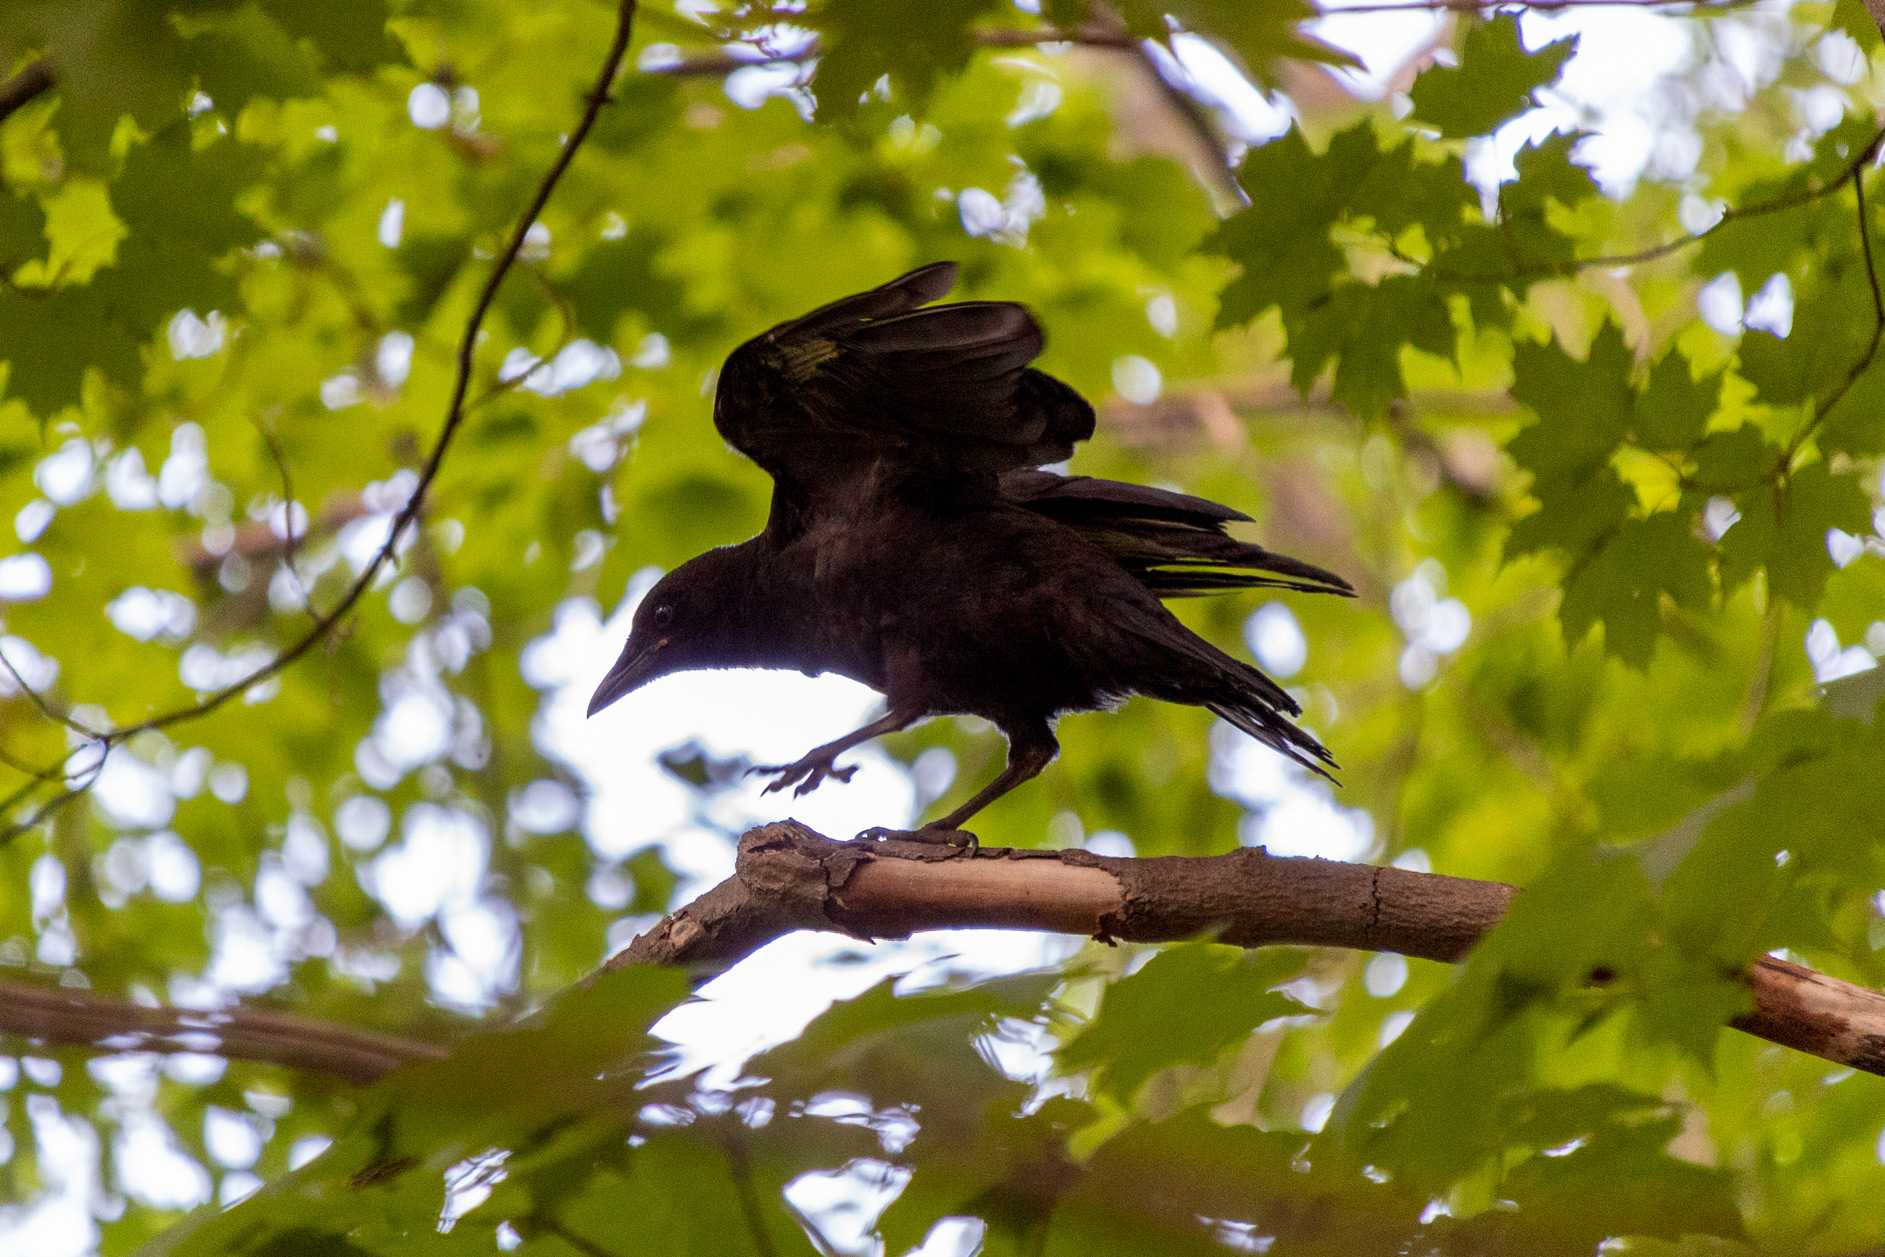 Crow walking on a tree branch